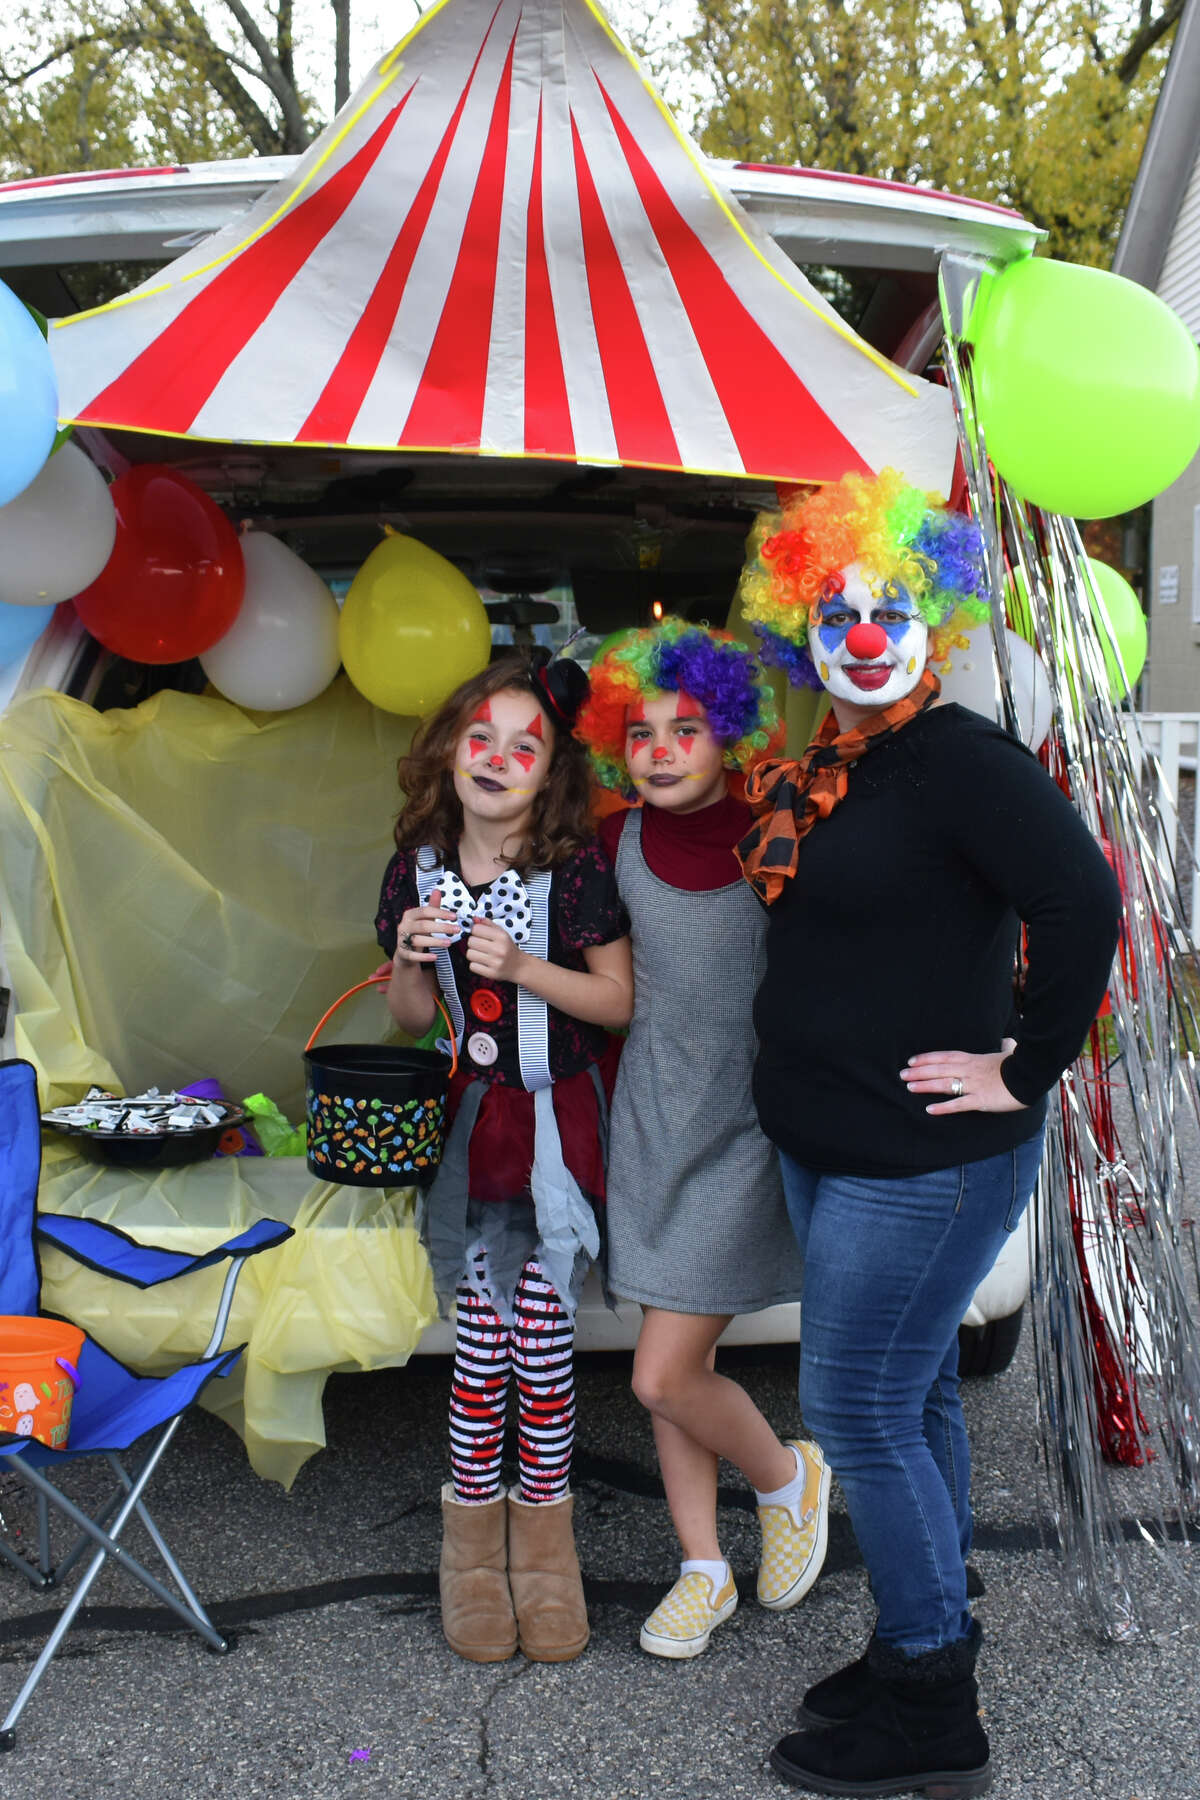 The 2019 Winsted Recreation Department held their Annual Trunk or Treat at Rowley Park on their rain date, Monday, October 28.